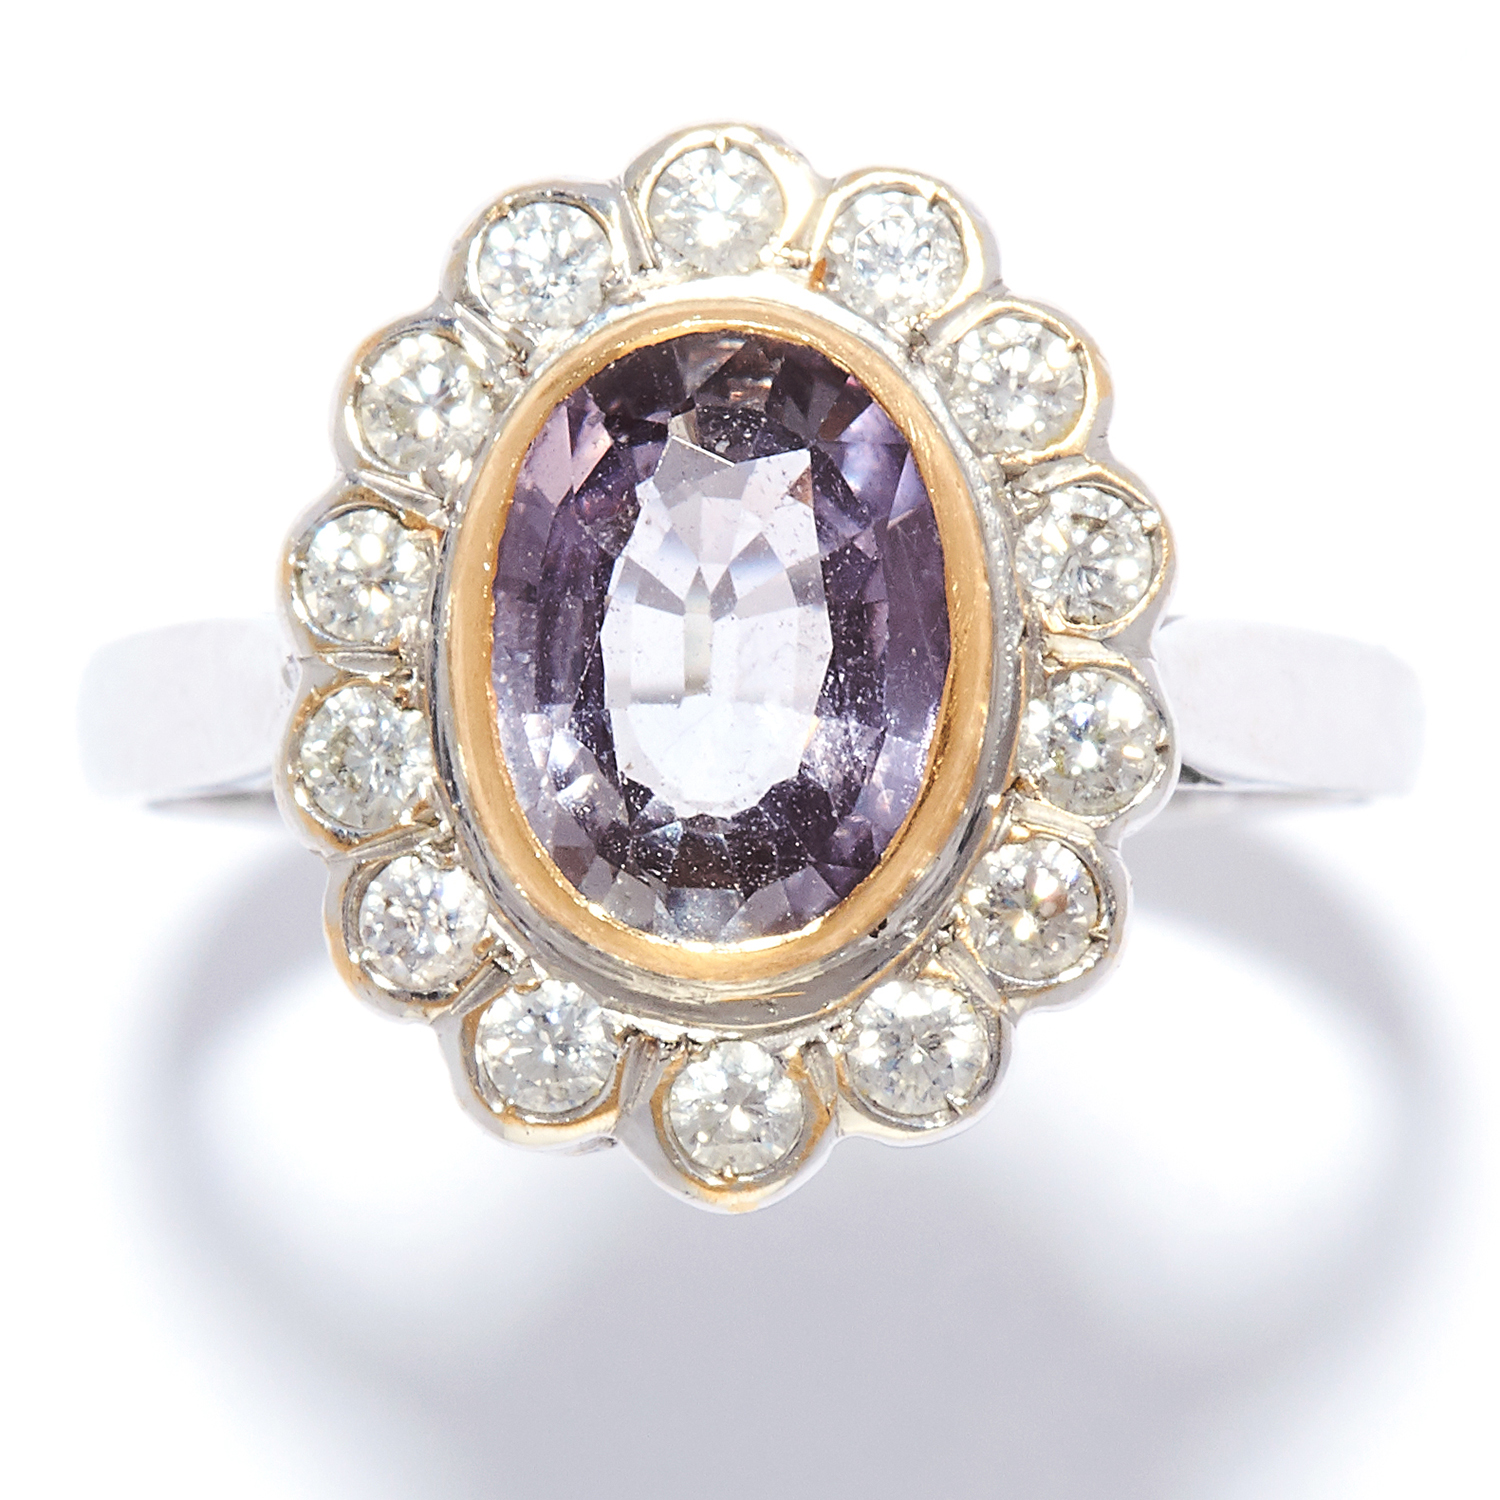 PURPLE SAPPHIRE AND DIAMOND CLUSTER RING in 18ct white gold, set with an oval cut purple sapphire of